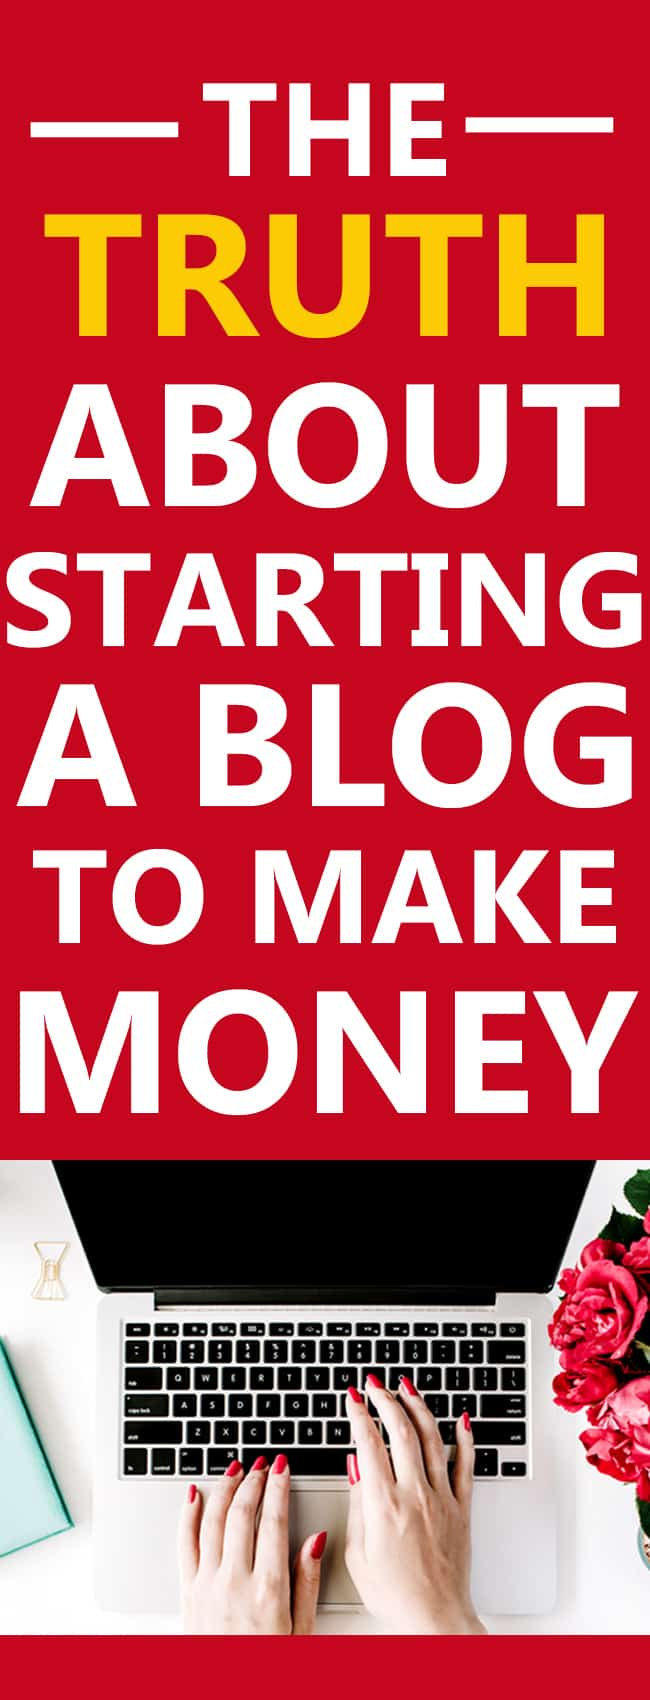 Starting a blog to make money? There is something you HAVE TO KNOW first - something that no one tells you!